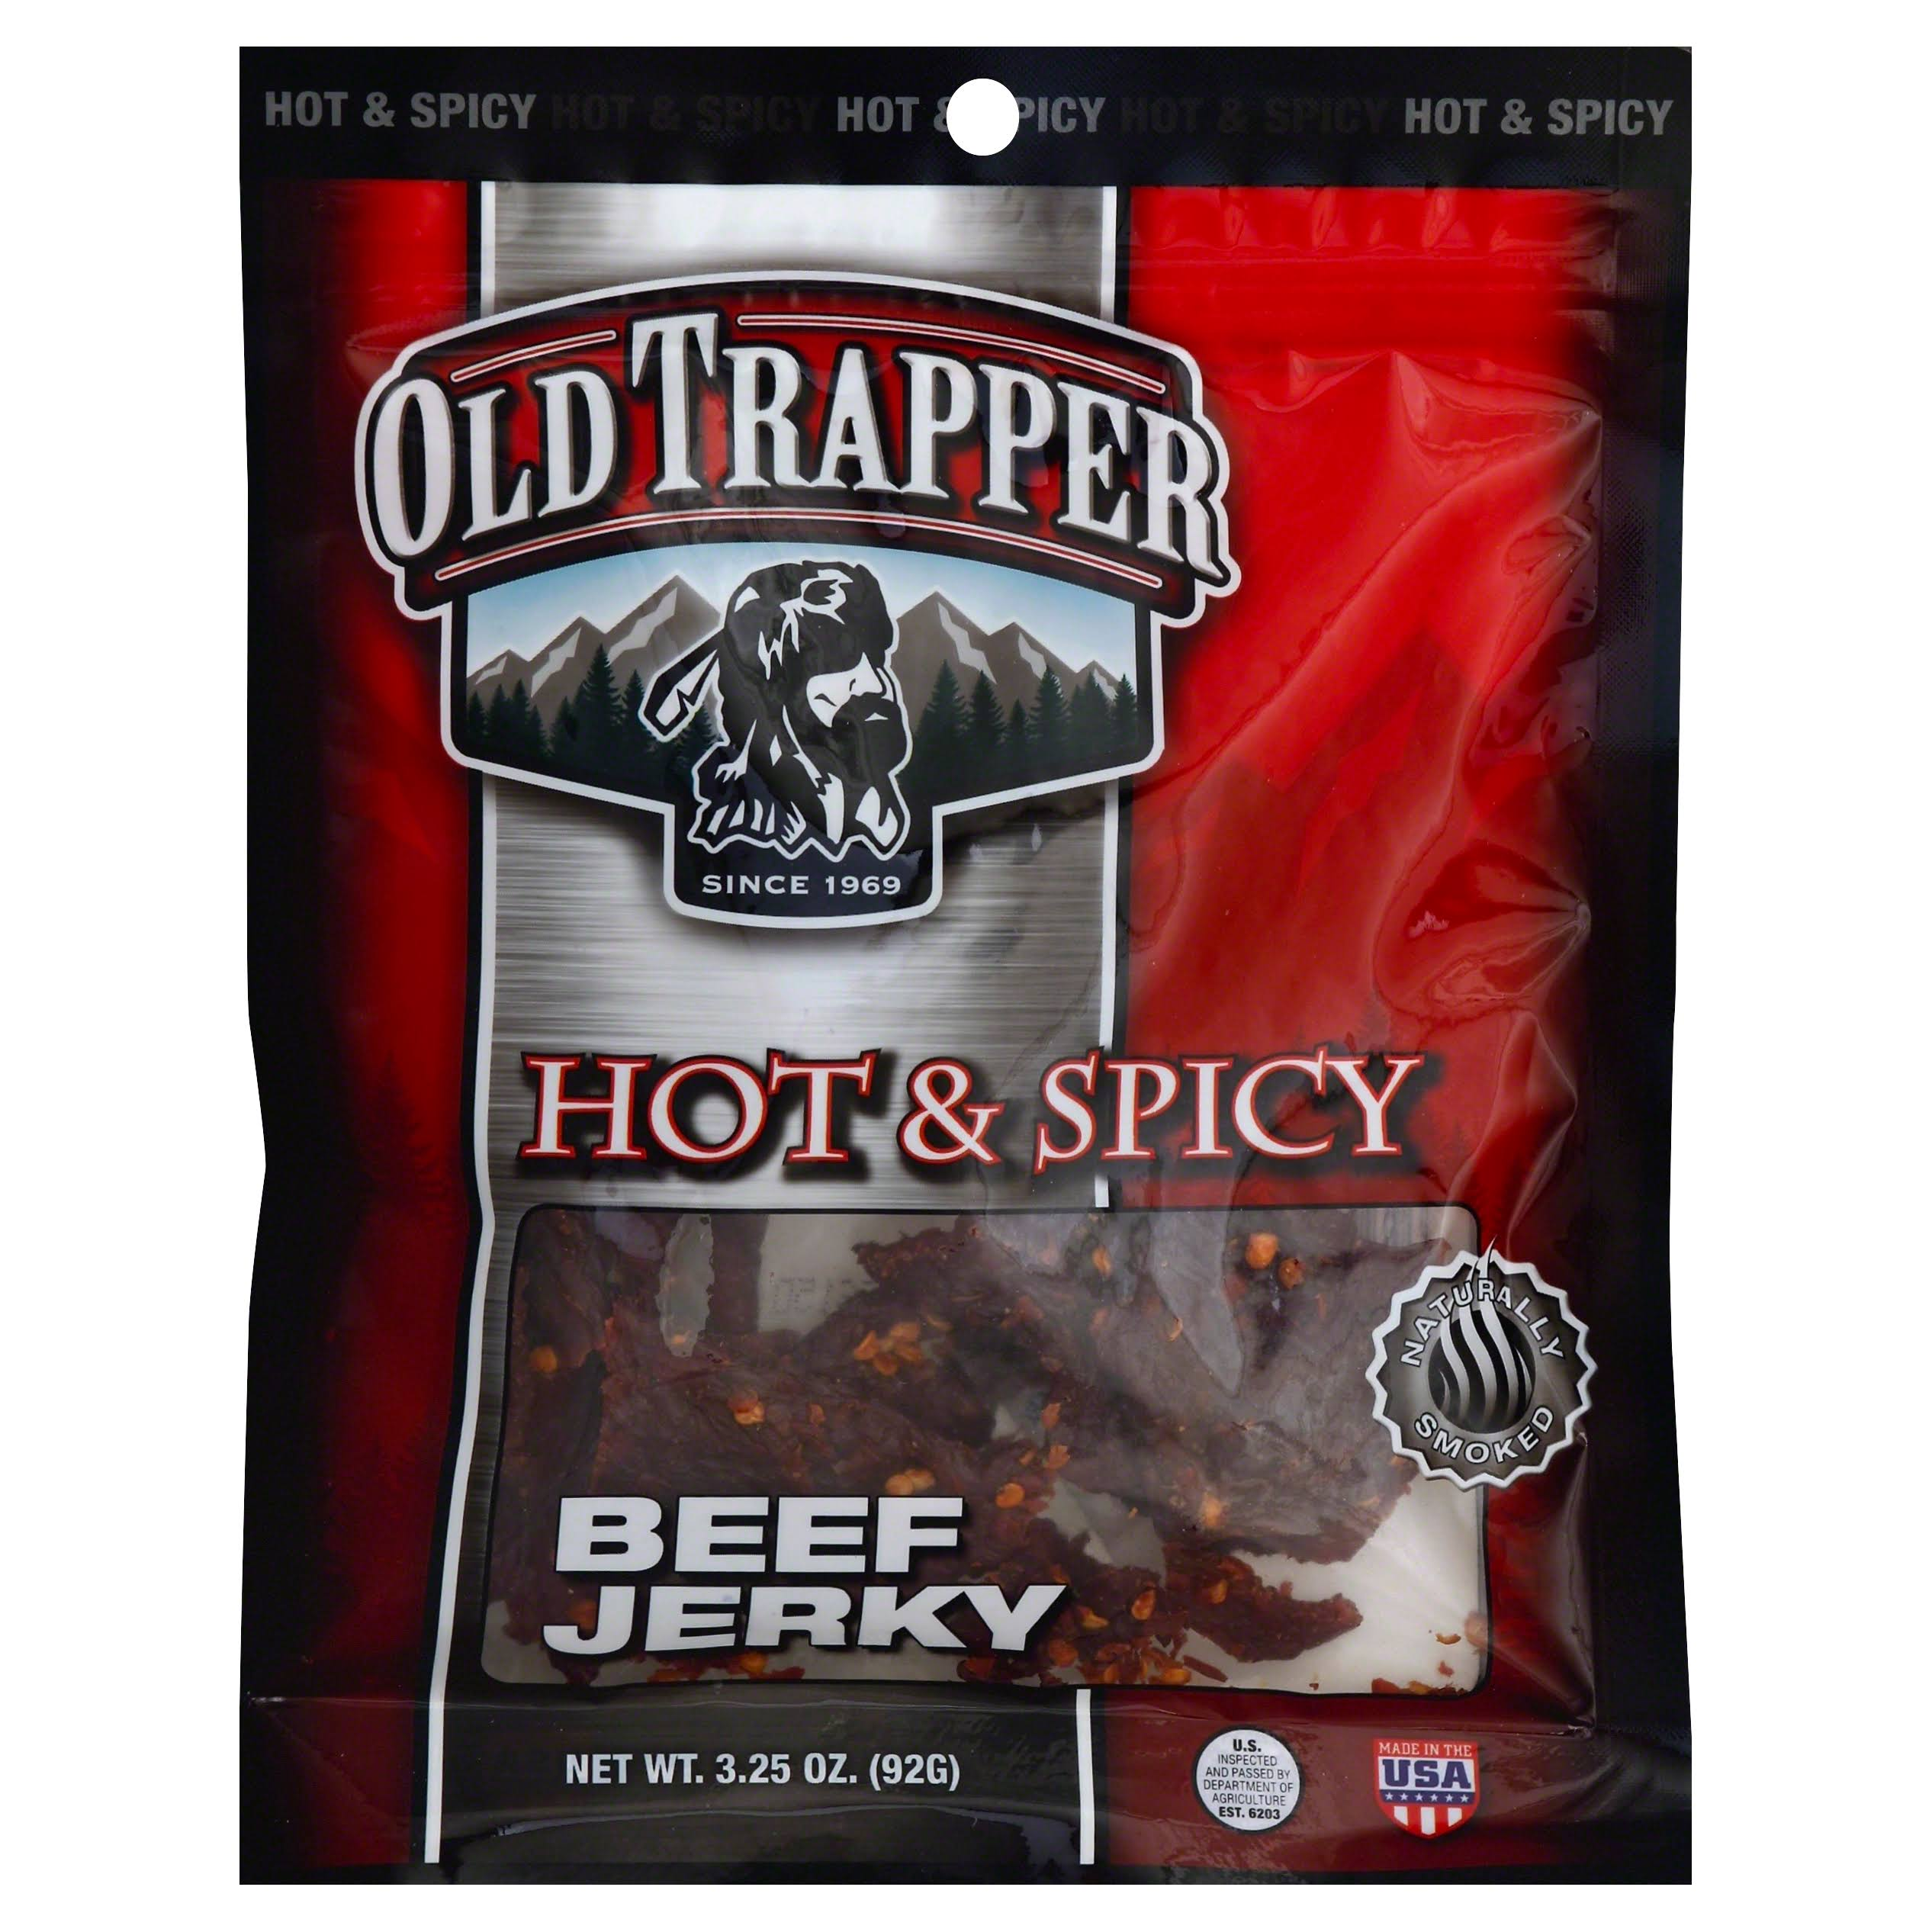 Old Trapper Beef Jerky, Hot & Spicy - 3.25 oz